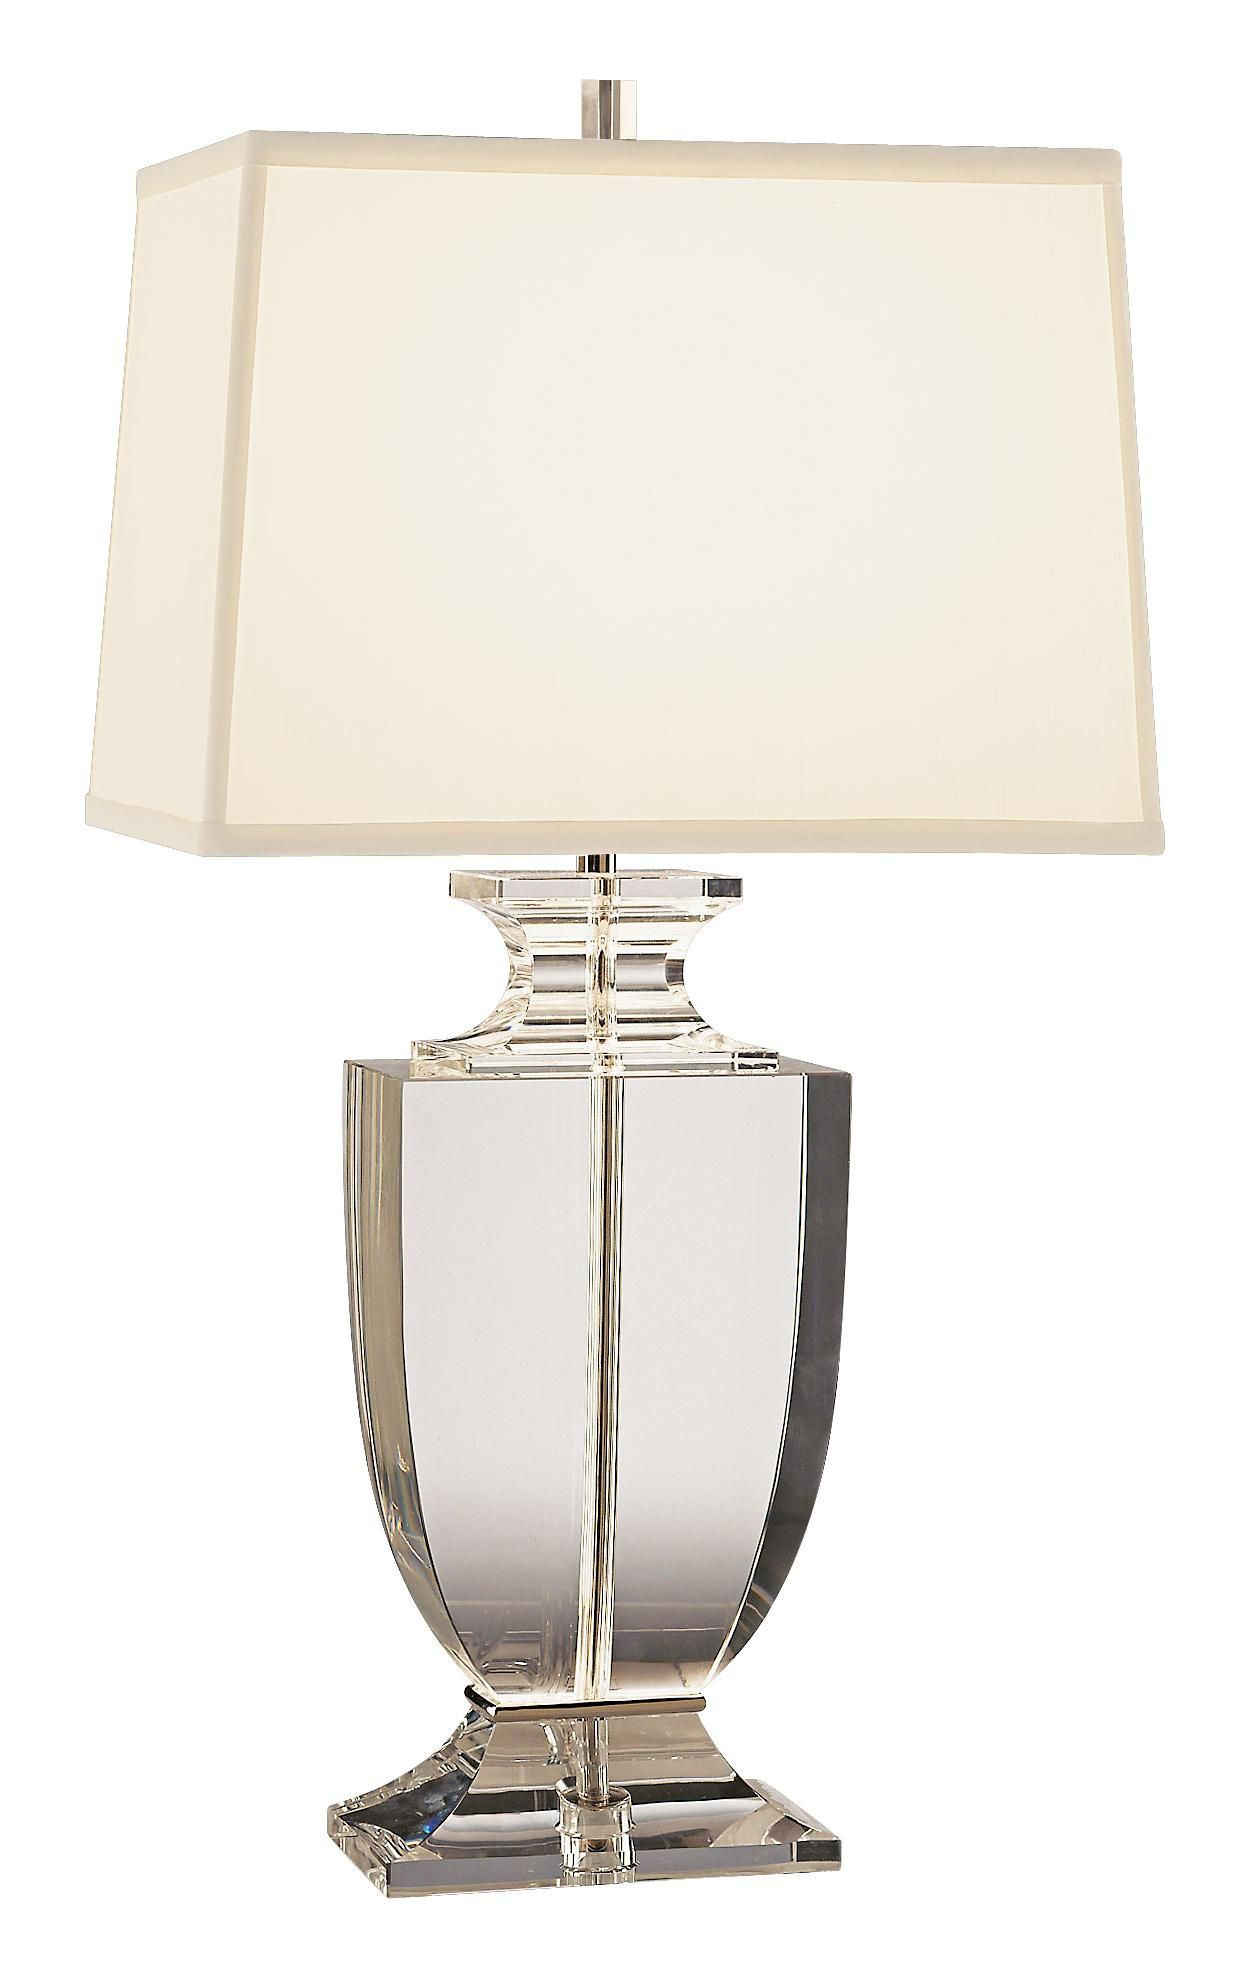 Artemis Clear Lead Crystal Table Lamp With Off White Shade Lampentisch Lampe Vintage Tischlampen